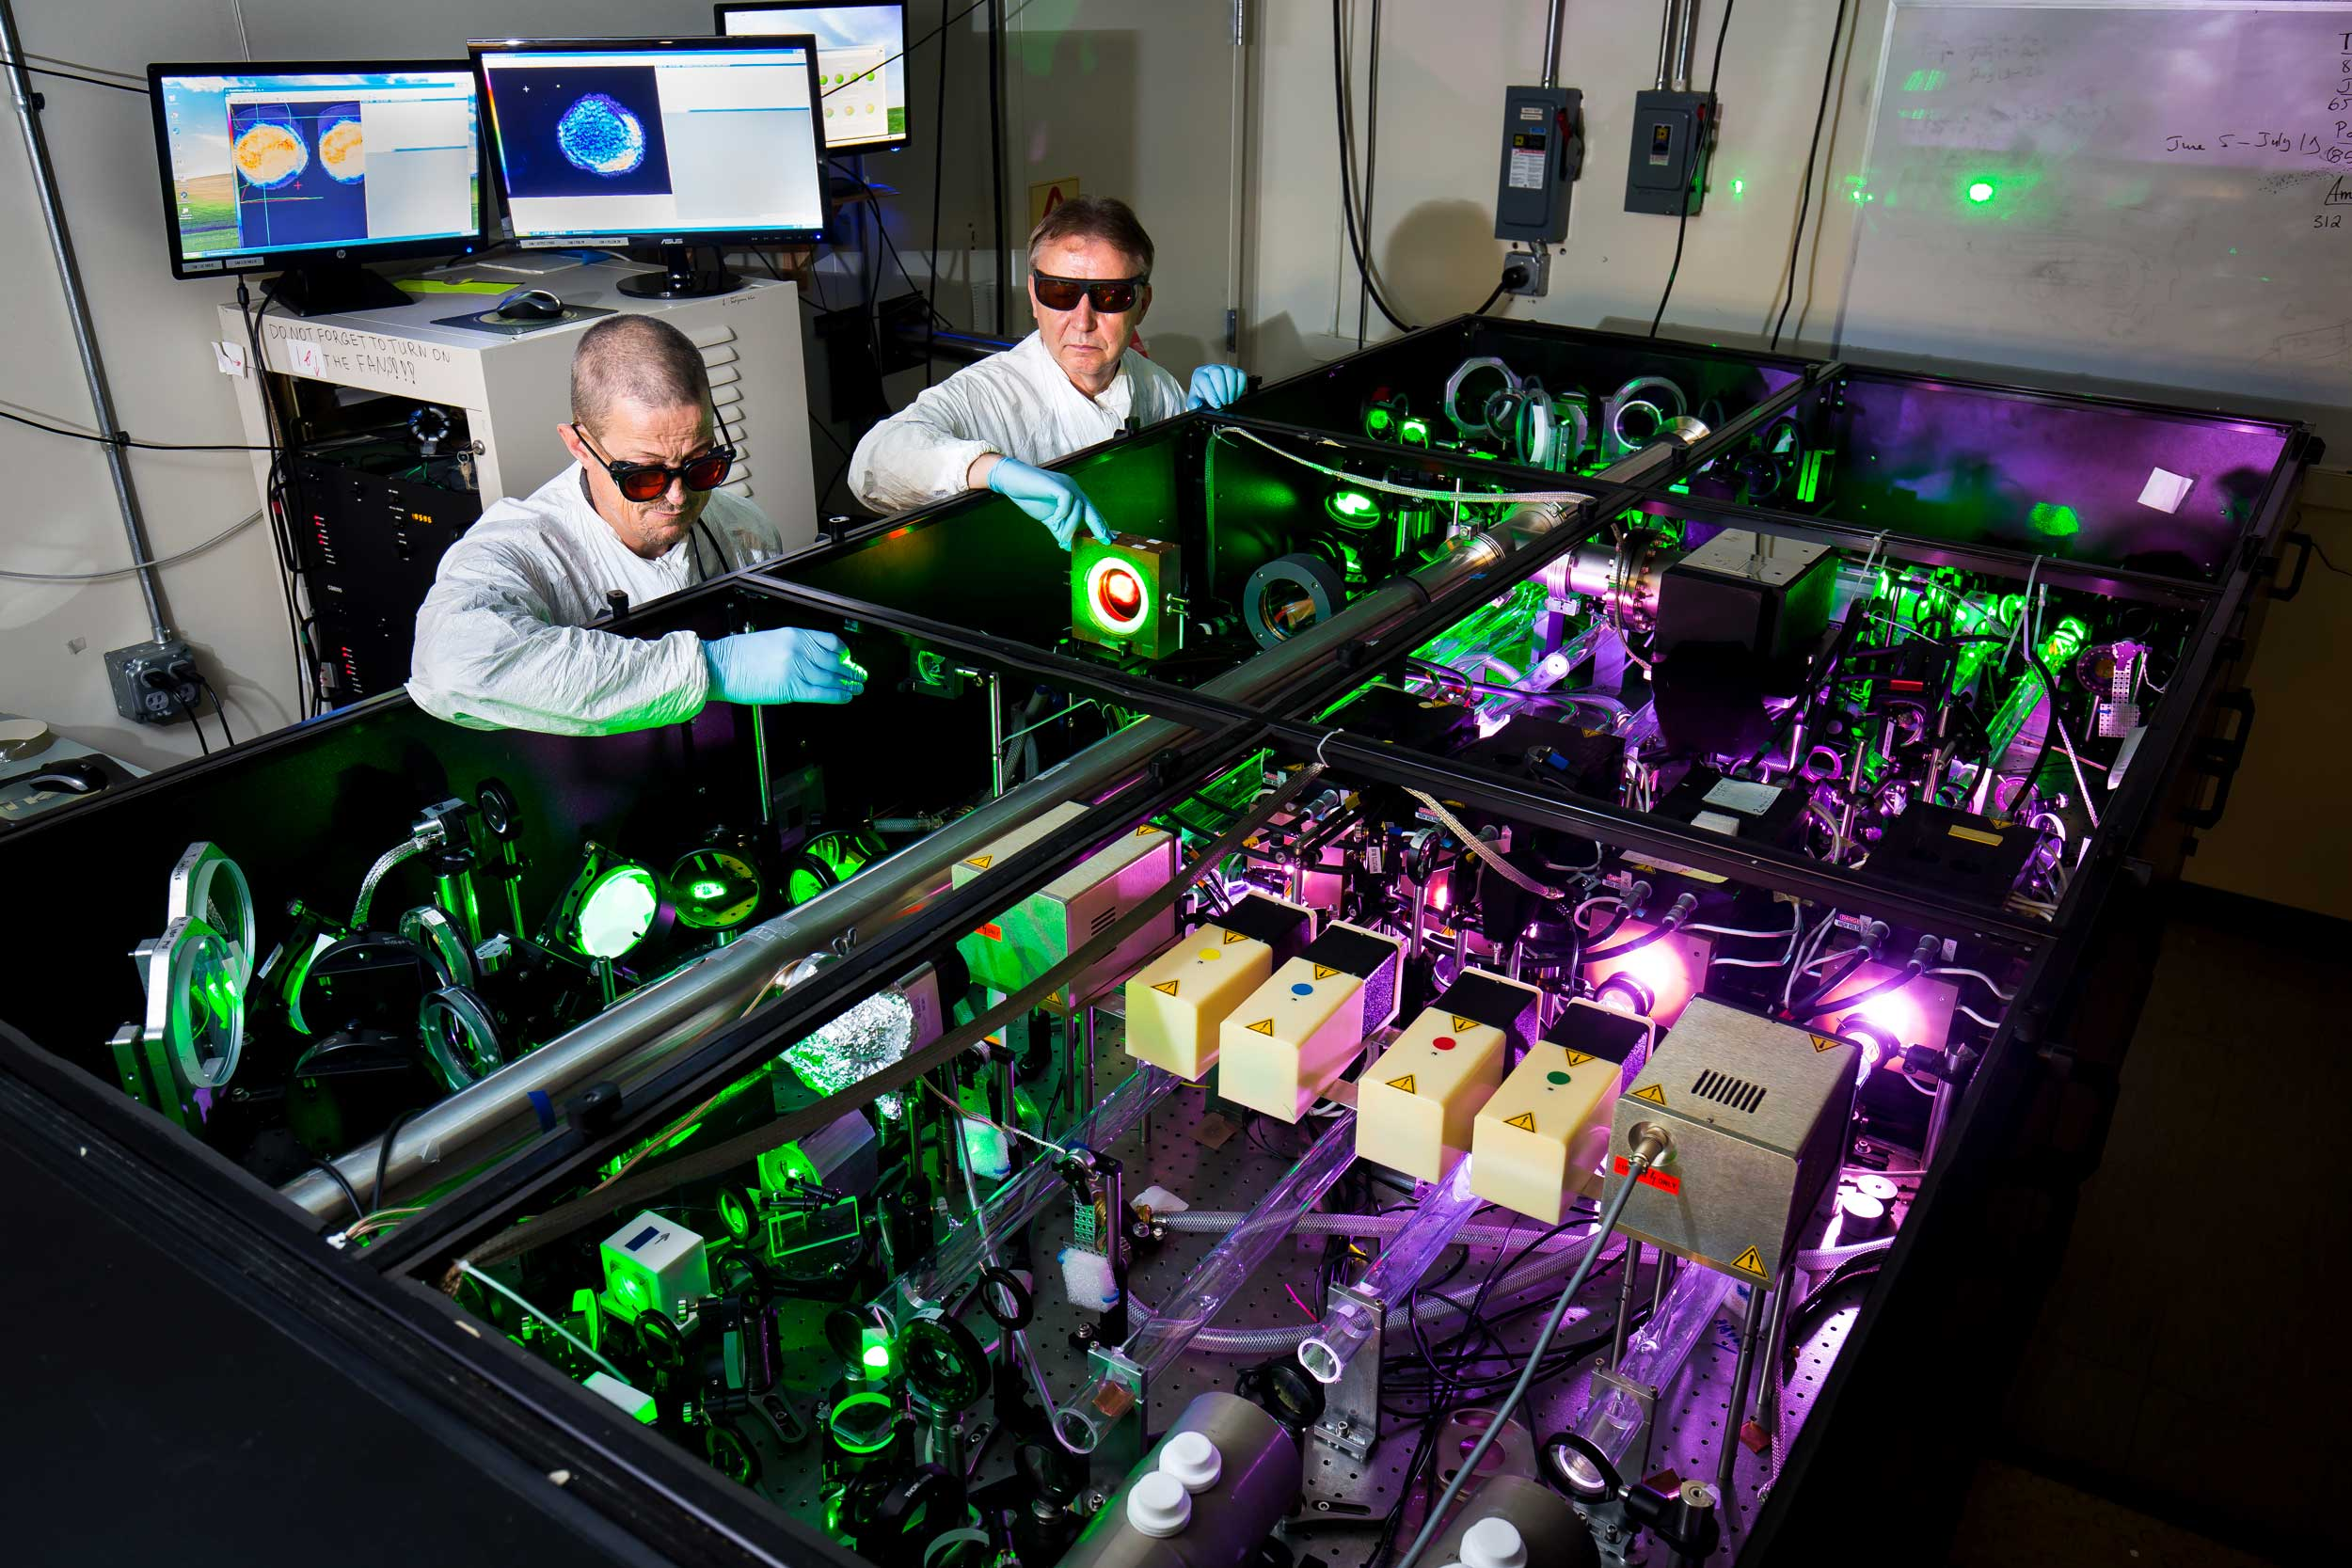 The HERCULES laser holds the Guinness World Records certificate for highest intensity focused laser, and it is about to get more powerful and intense with a $2M upgrade from the National Science Foundation. Image credit: Joseph Xu, Michigan Engineering